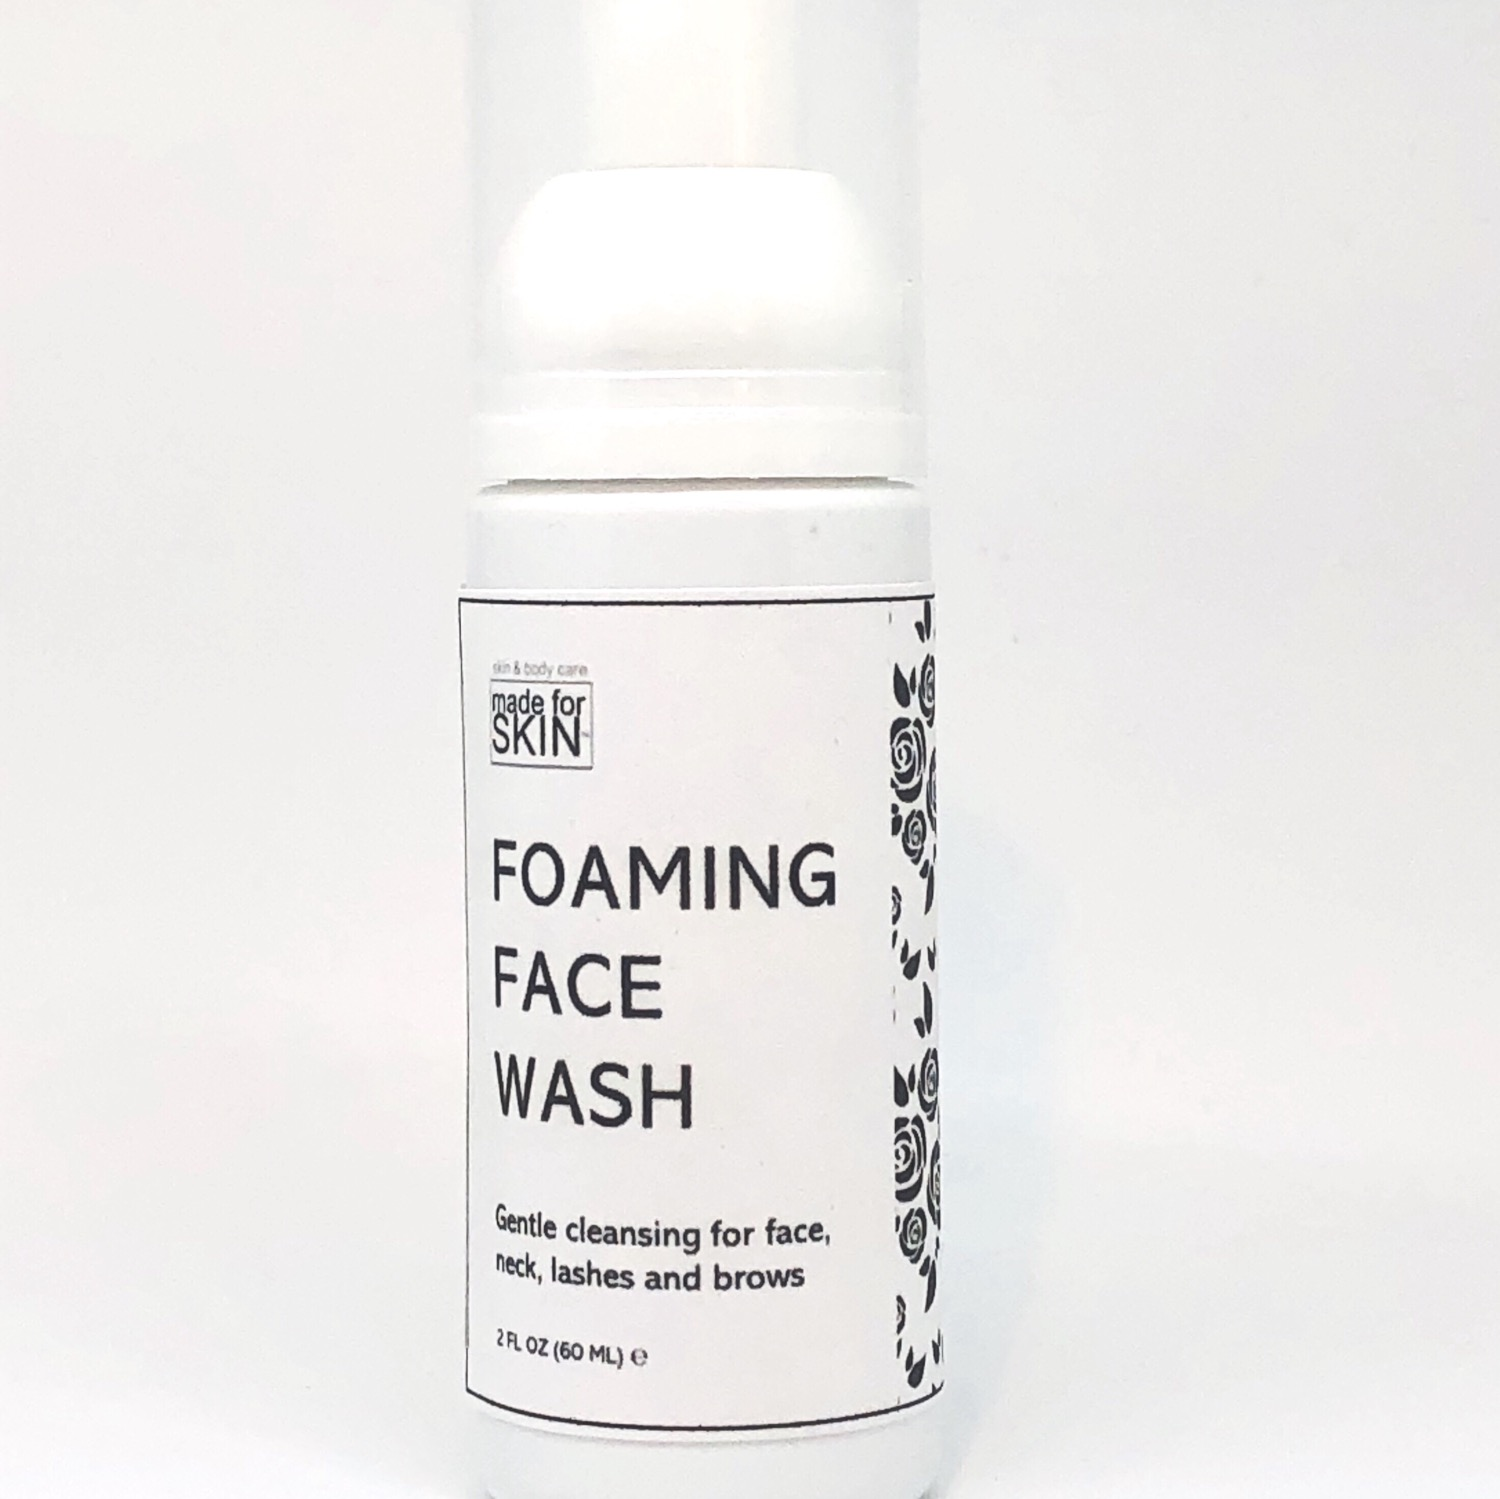 Foaming Face, Eye Lash Wash and Make Up Remover | made for SKIN